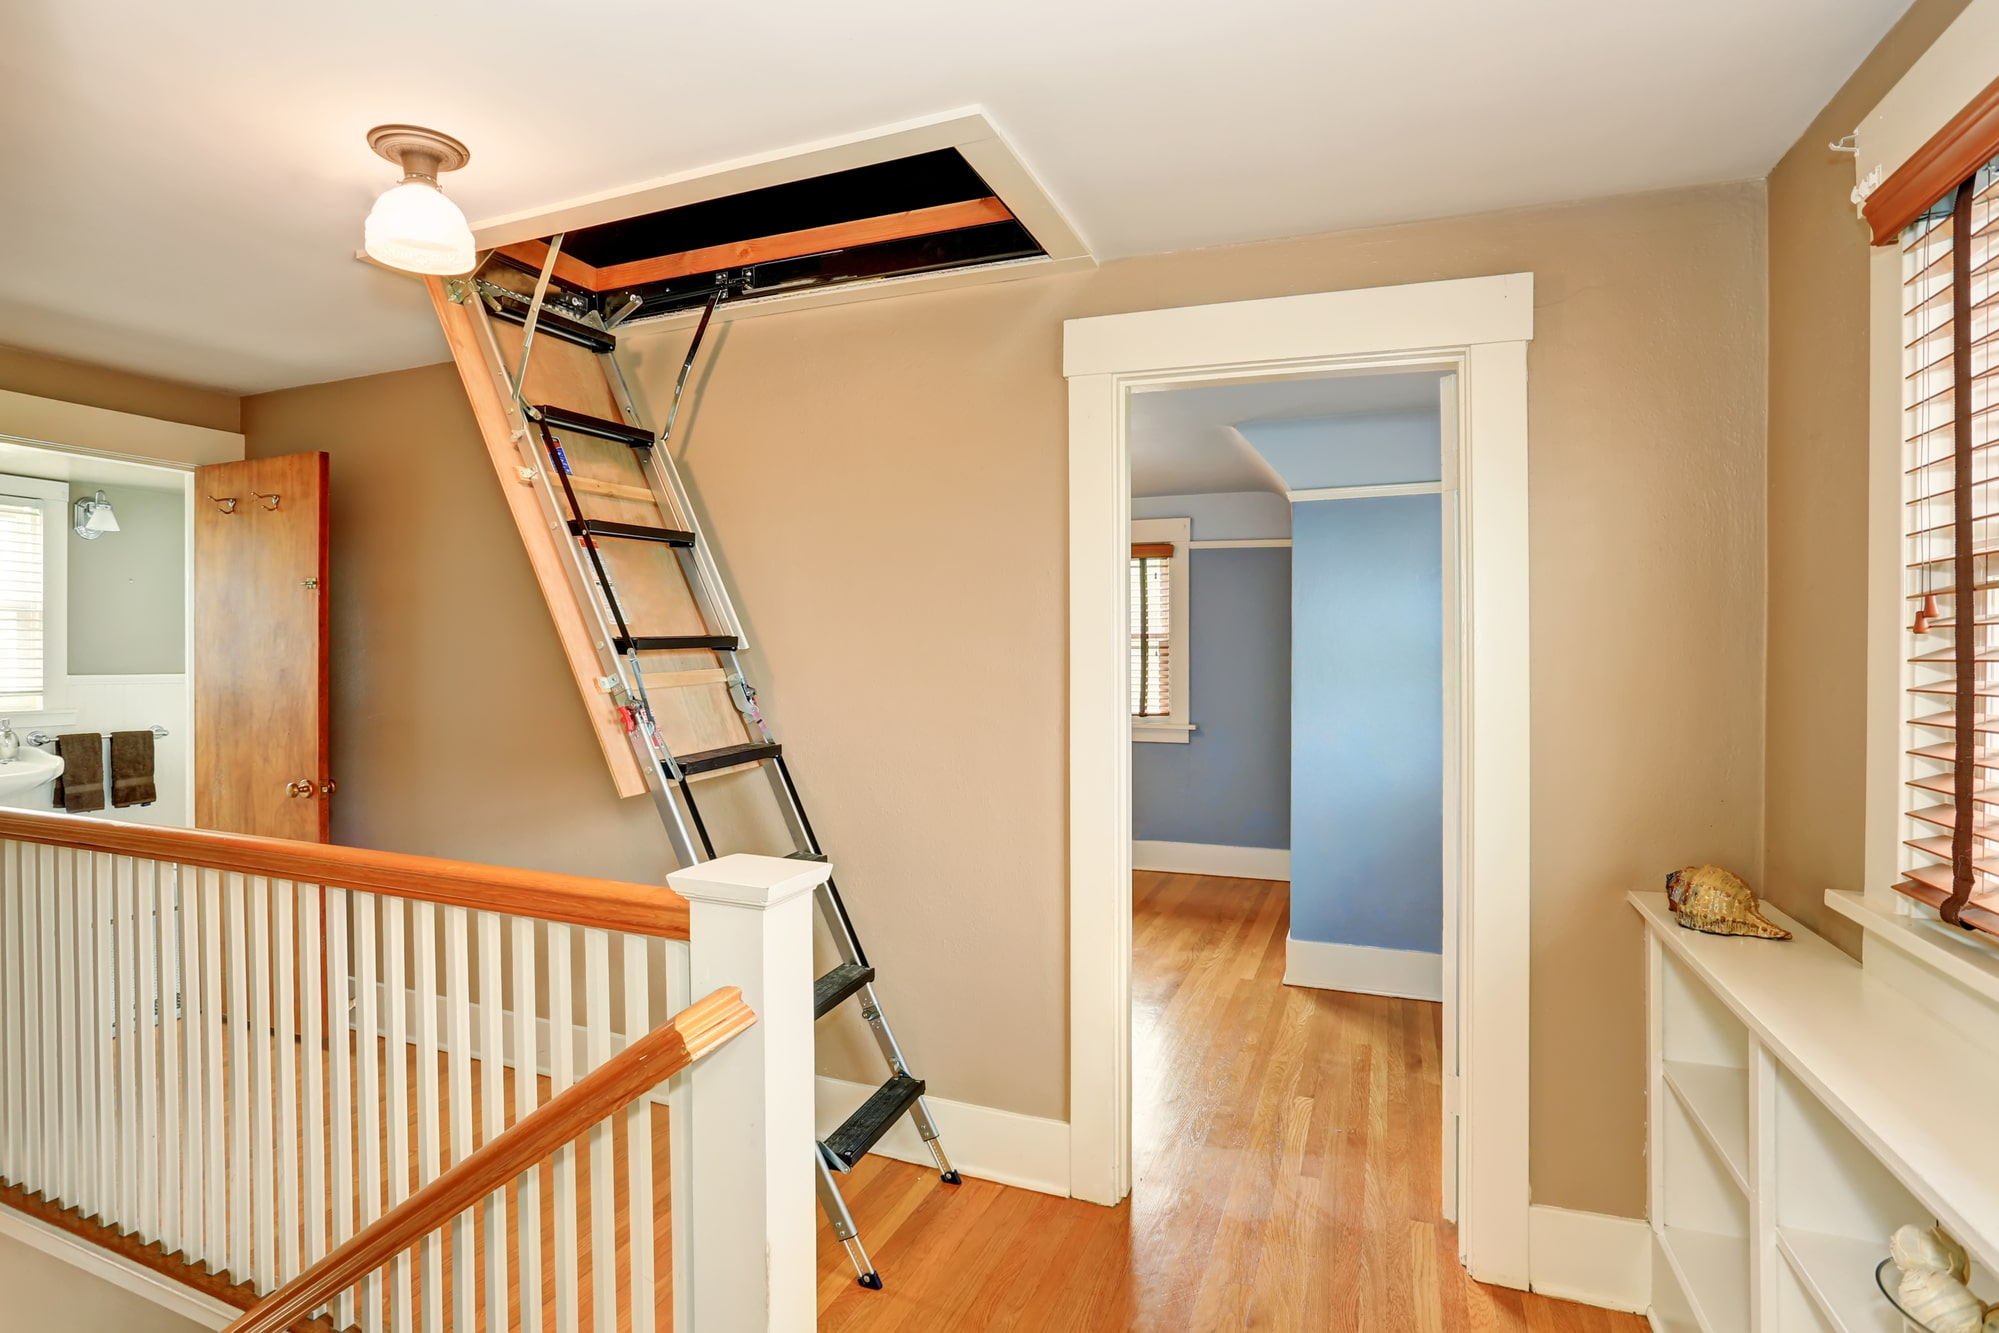 Manchester Homeowners - Do This And We'll Give You £100 Of Your Loft Ladder Installation